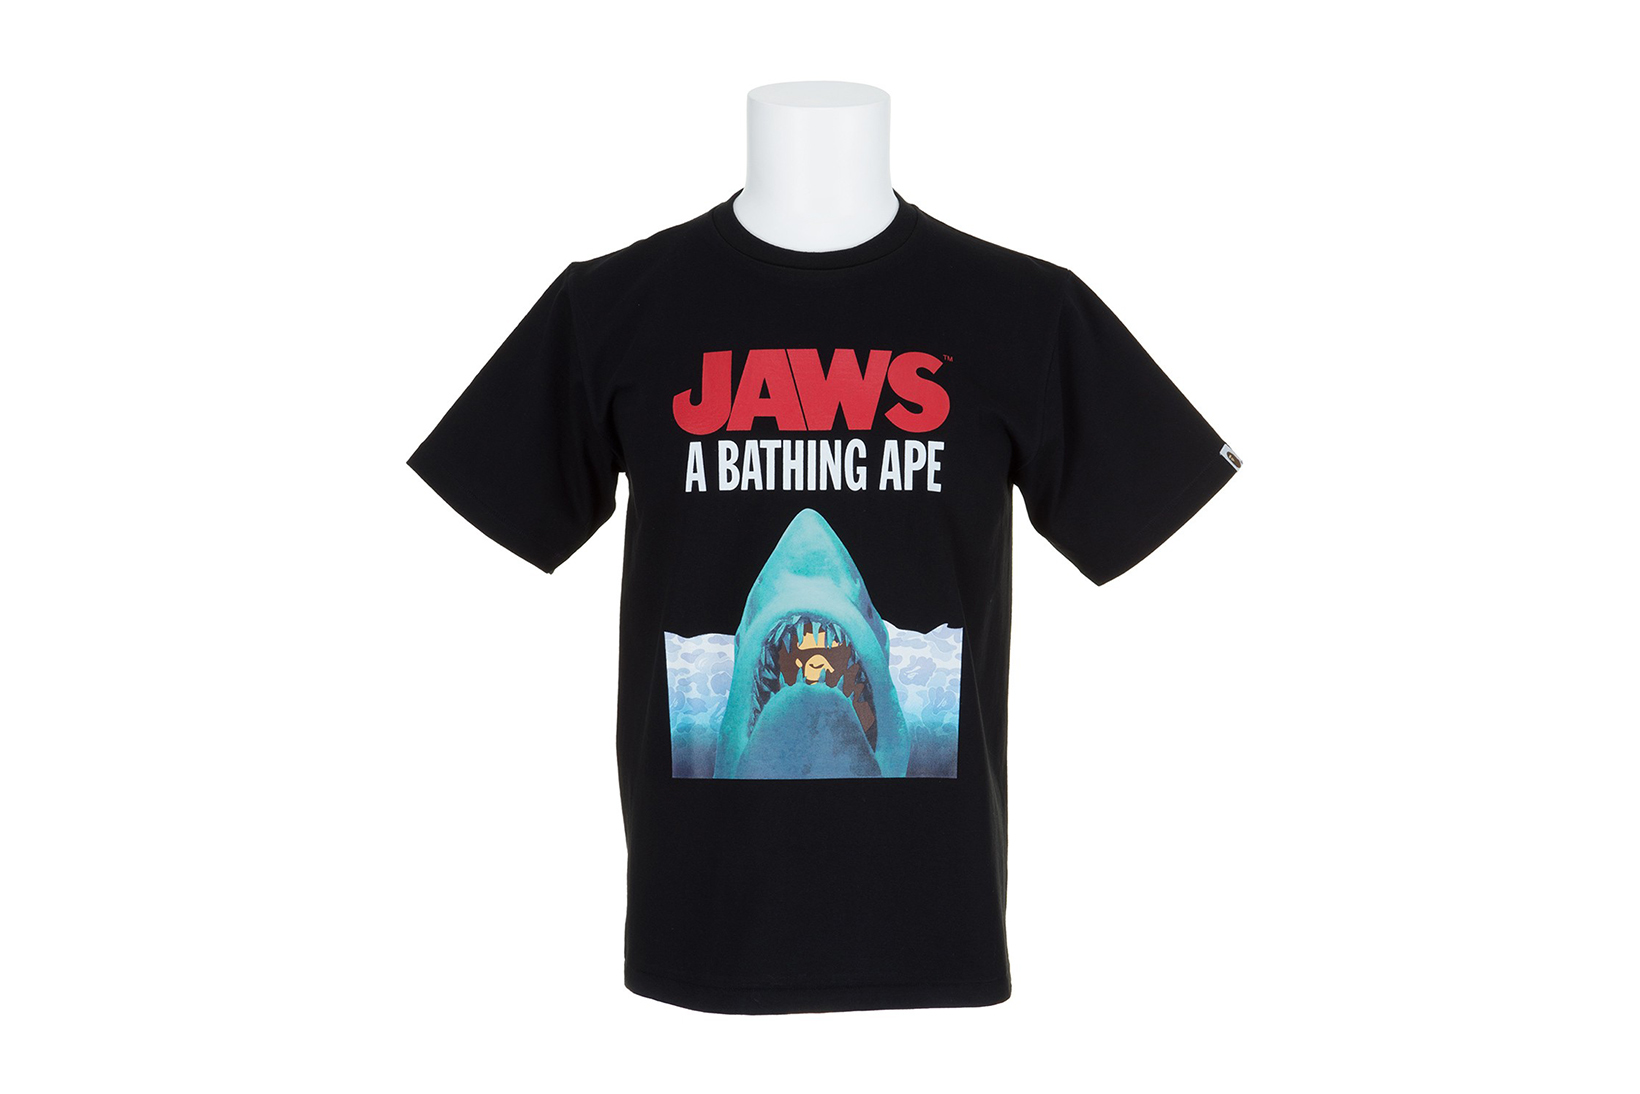 JAWS x Bathing Ape Time Capsule On Deck